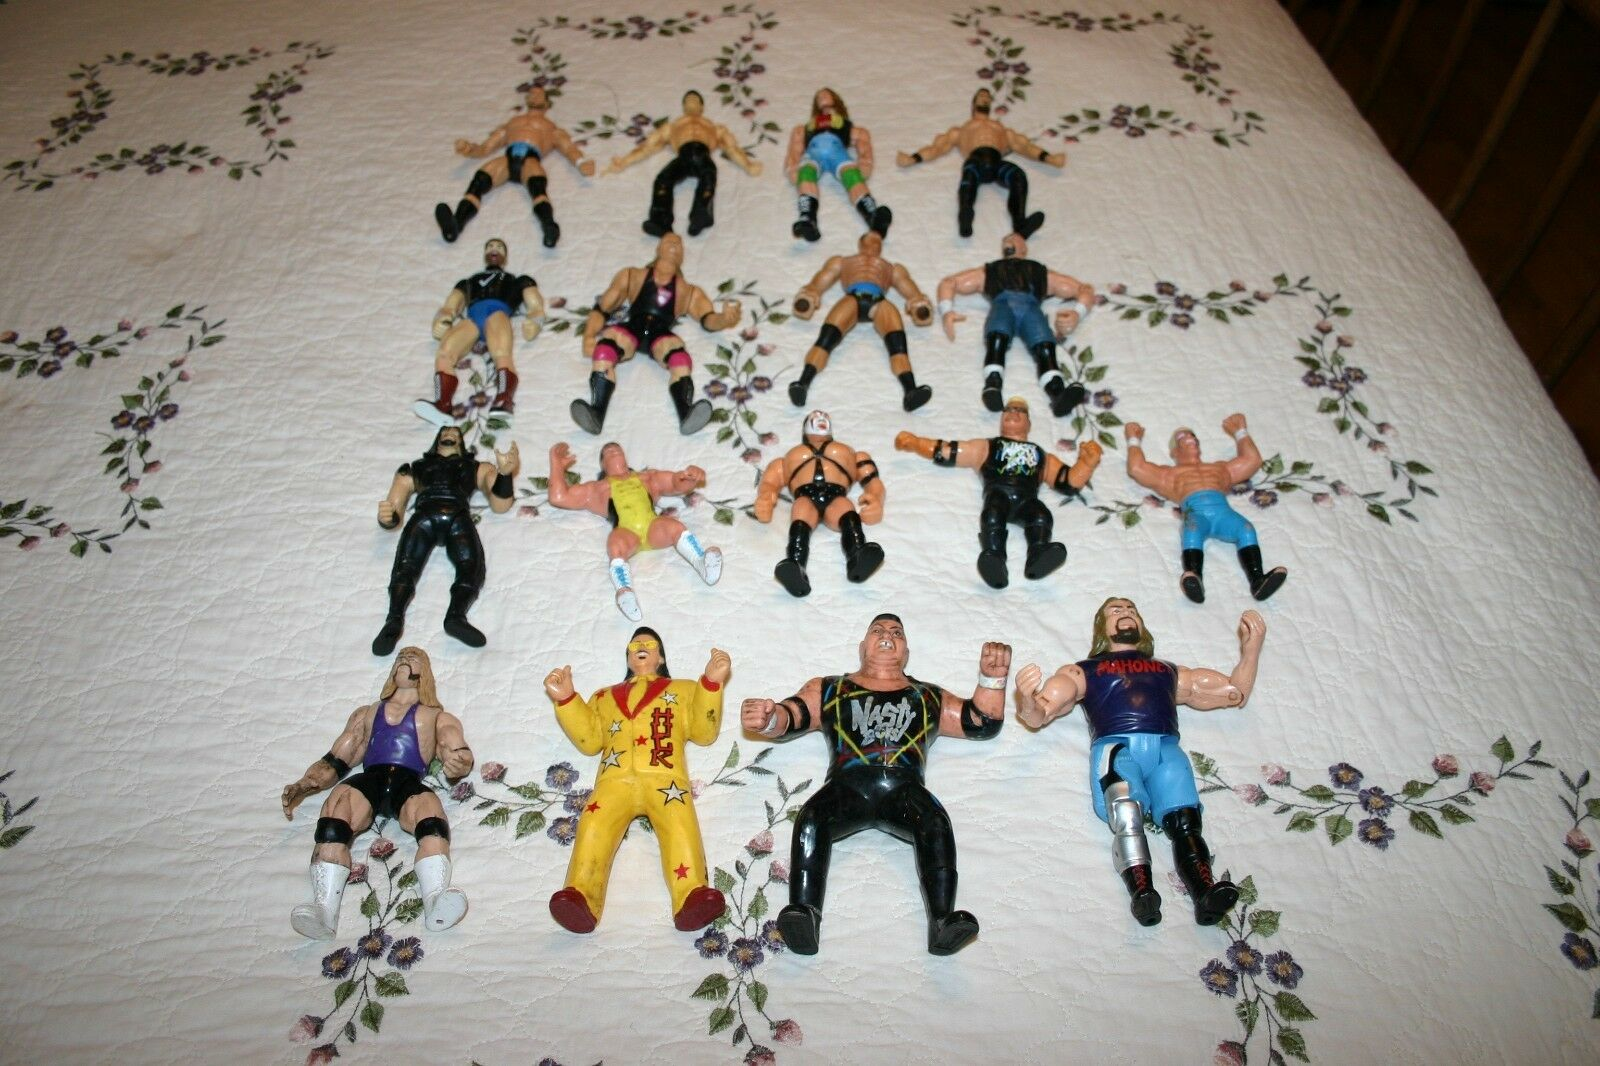 Lot of 17 Vtg 1990's Jakks Titan Marvel Wrestling Action Figures WWE WWF WCW